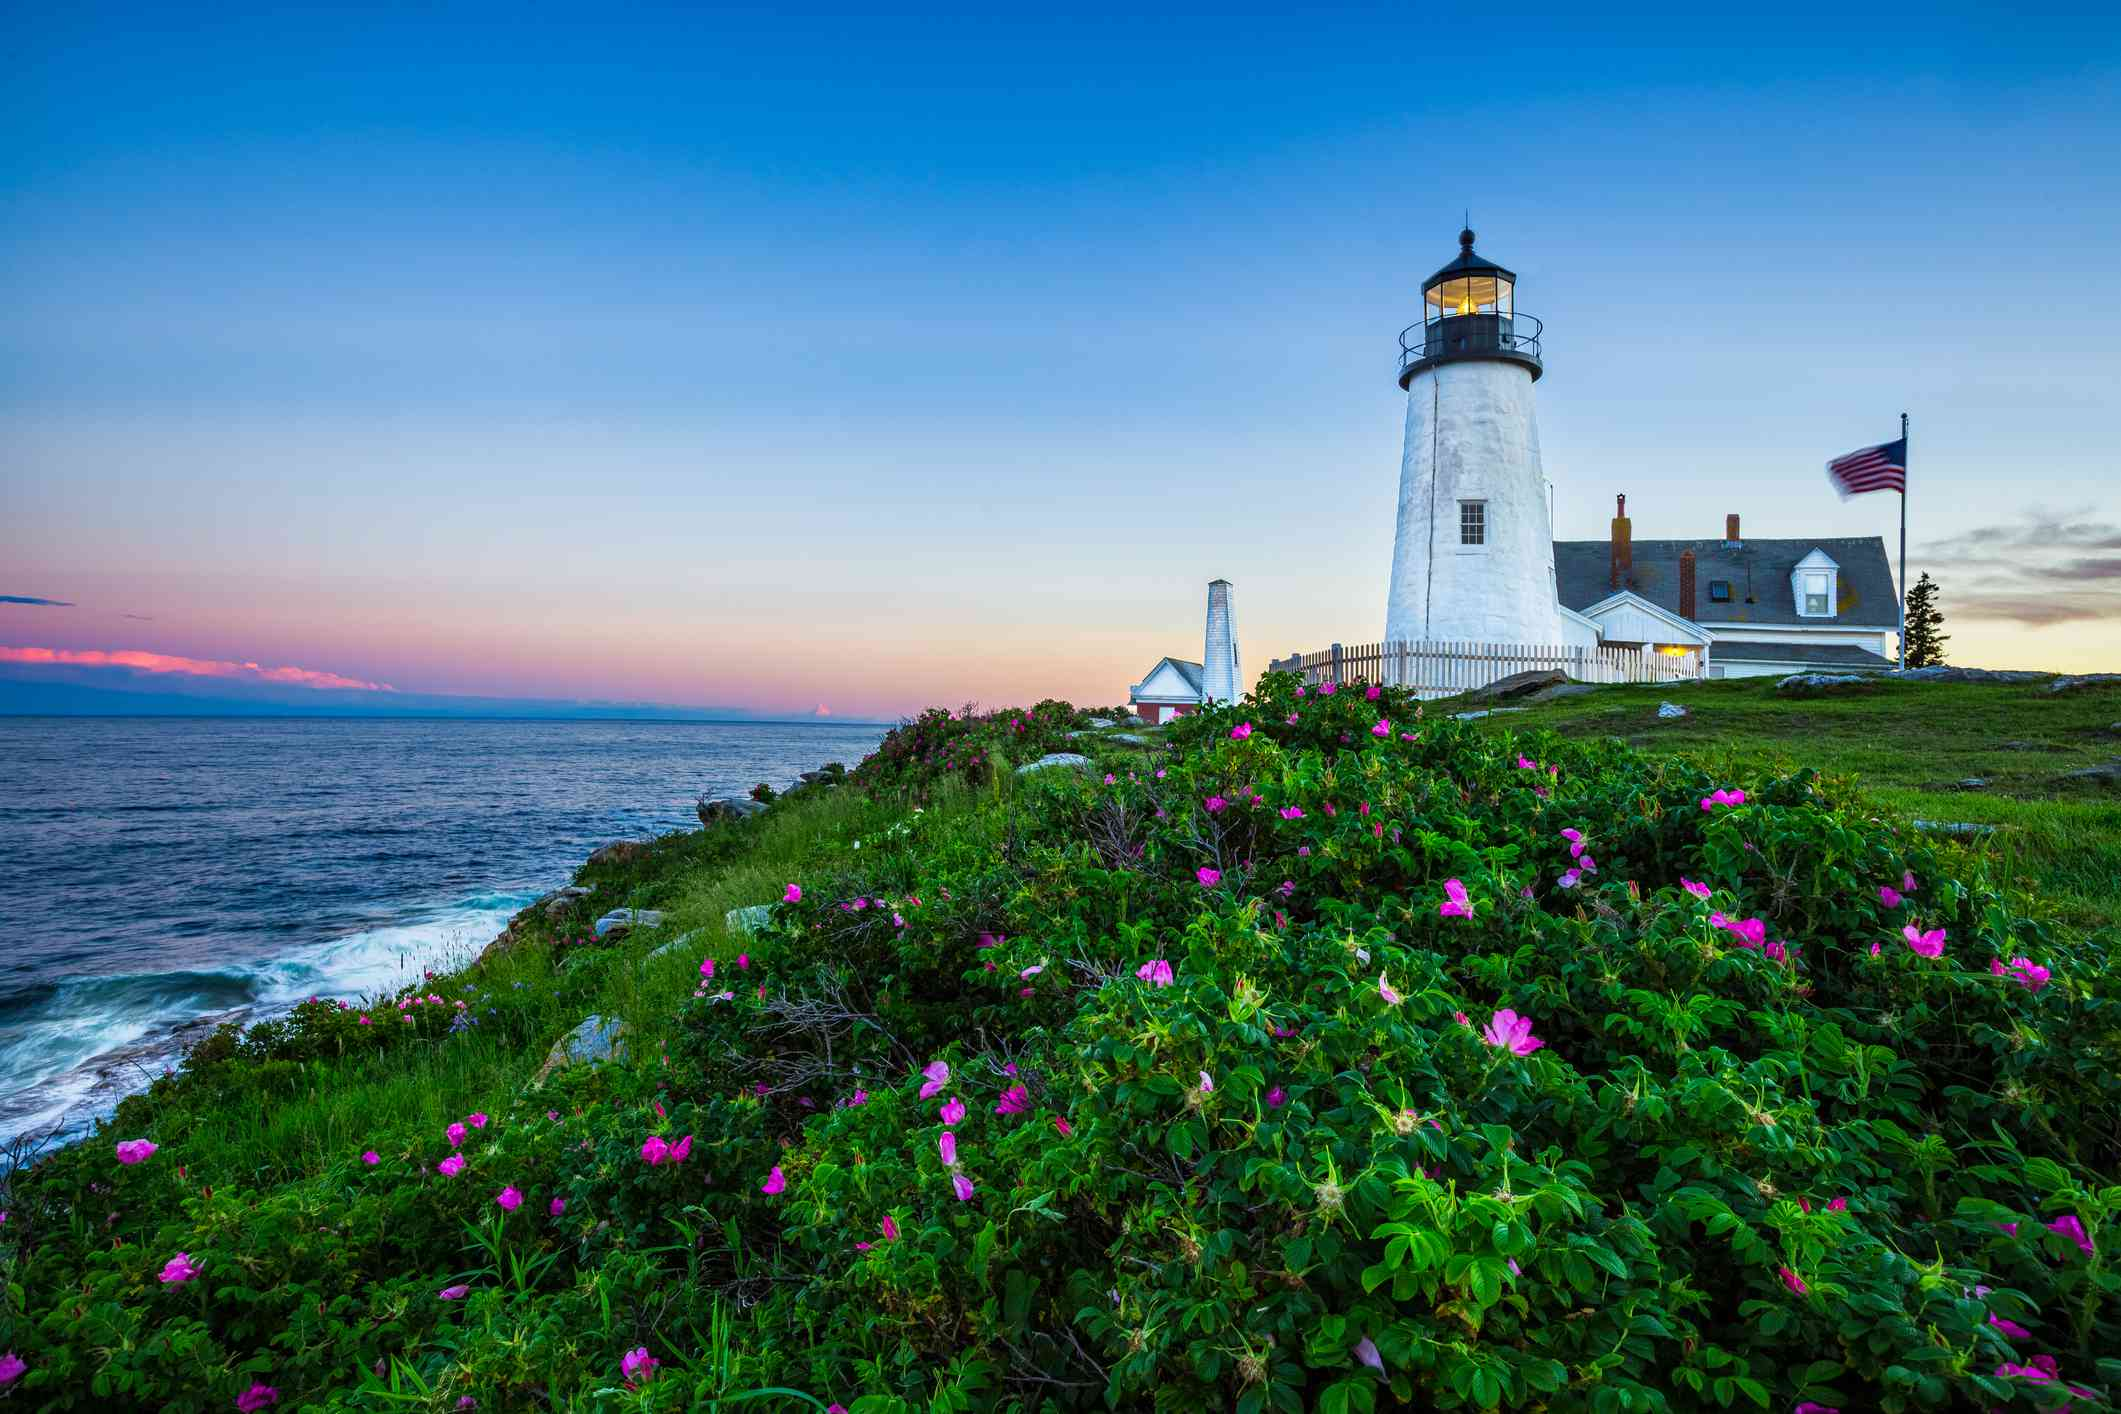 Pemiquid Point Lighthouse in background with green plants and pink flowers in foreground